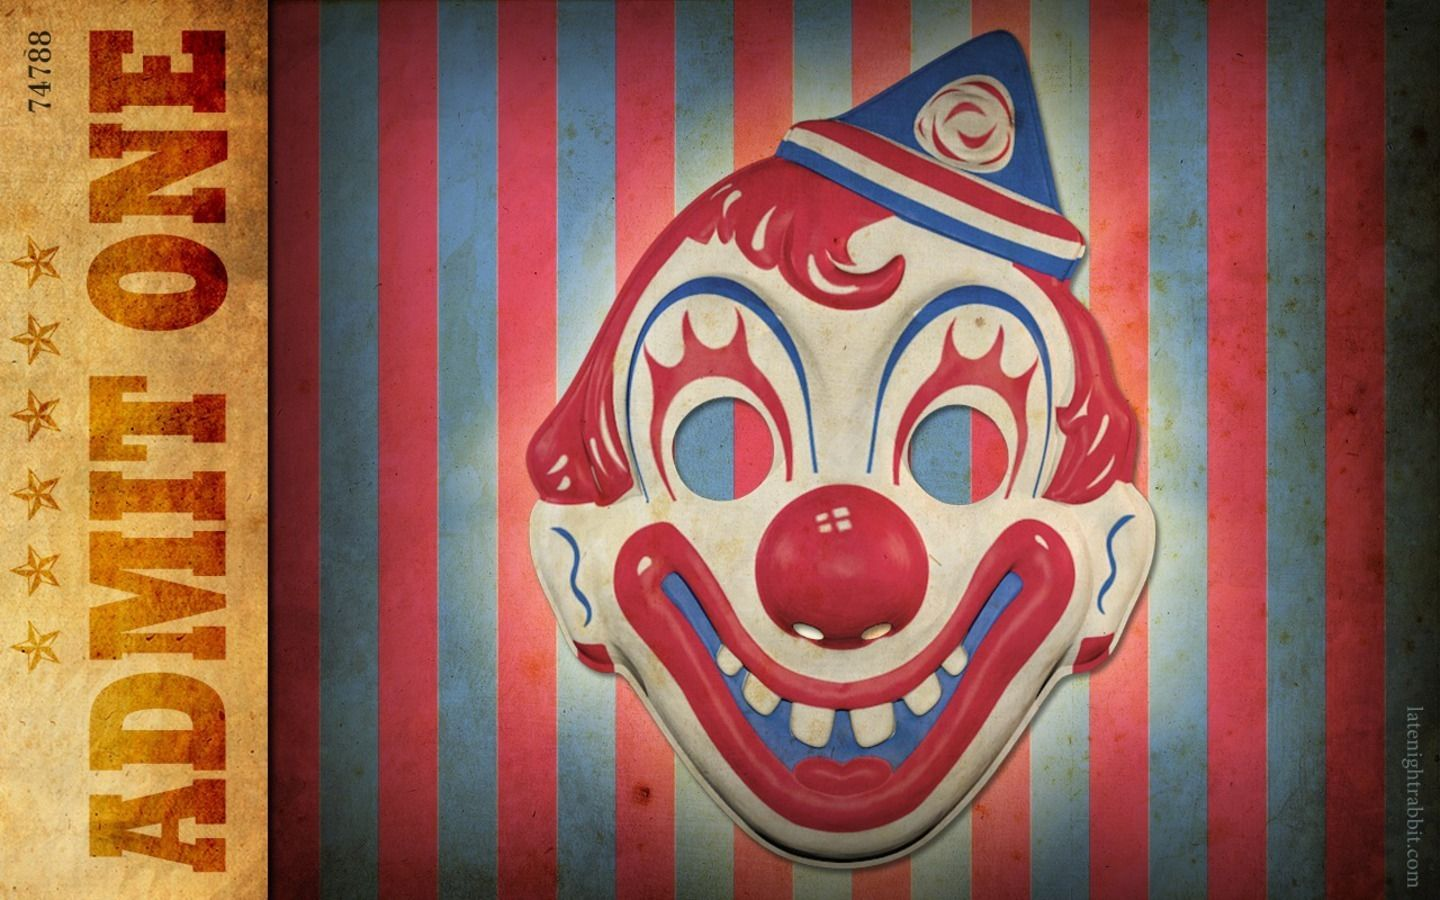 Wallpaper of Circus Clown for fans of Circus and Carnivals